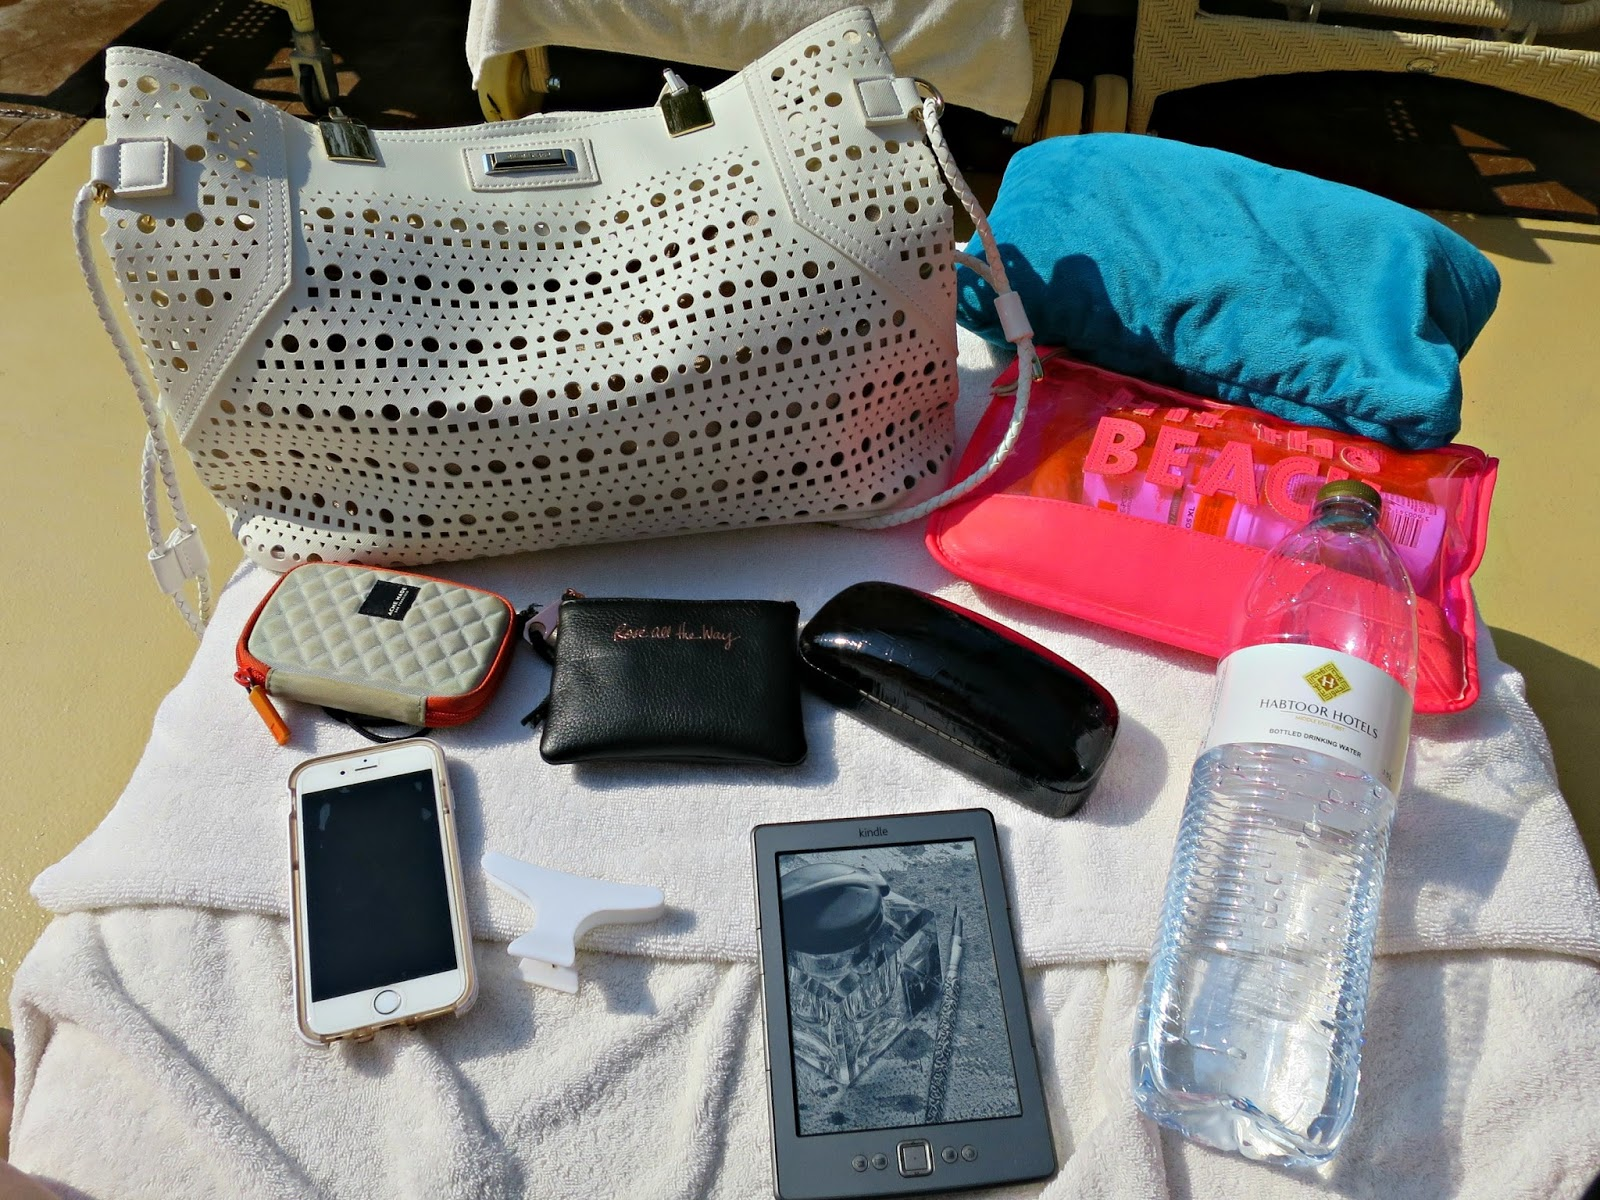 My Top 10 Dubai Pool Bag Essentials Image